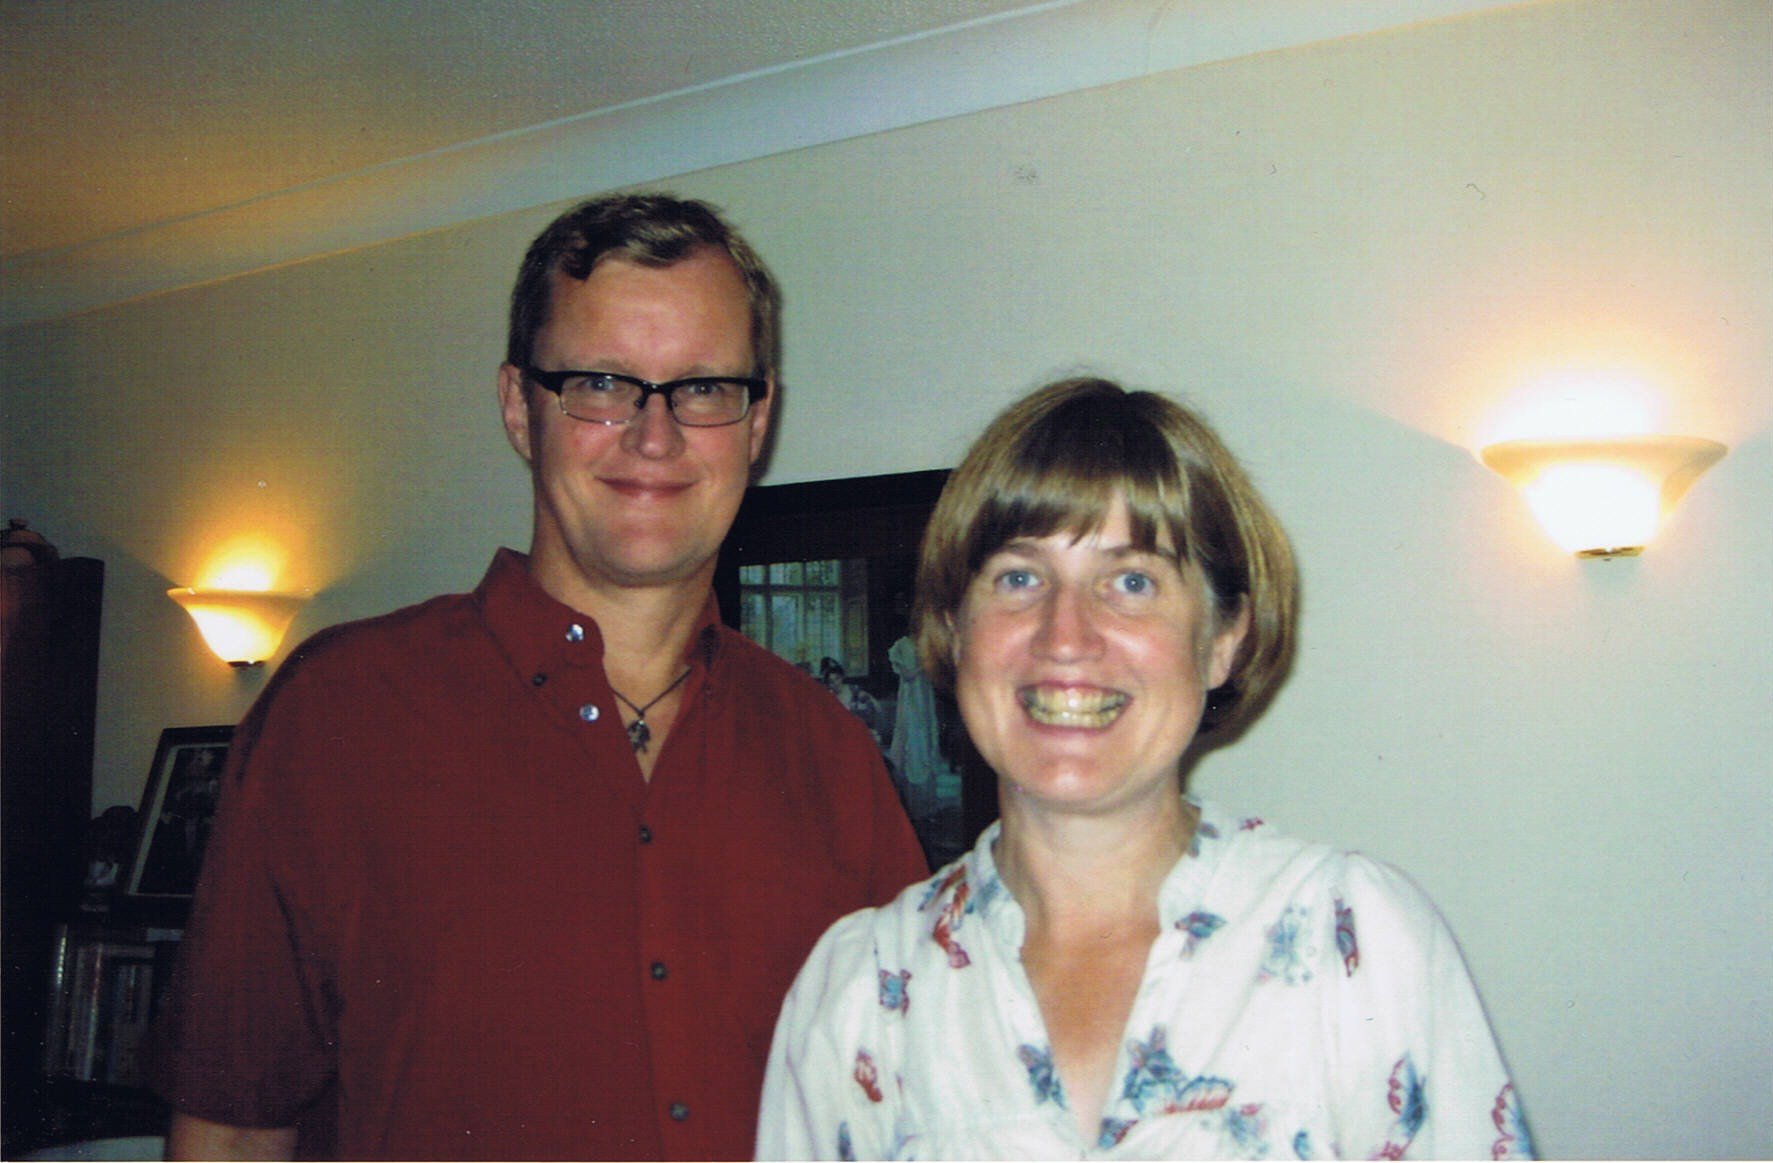 2011 Jon & Beccy 110926 - Scanned Mary Taylor's